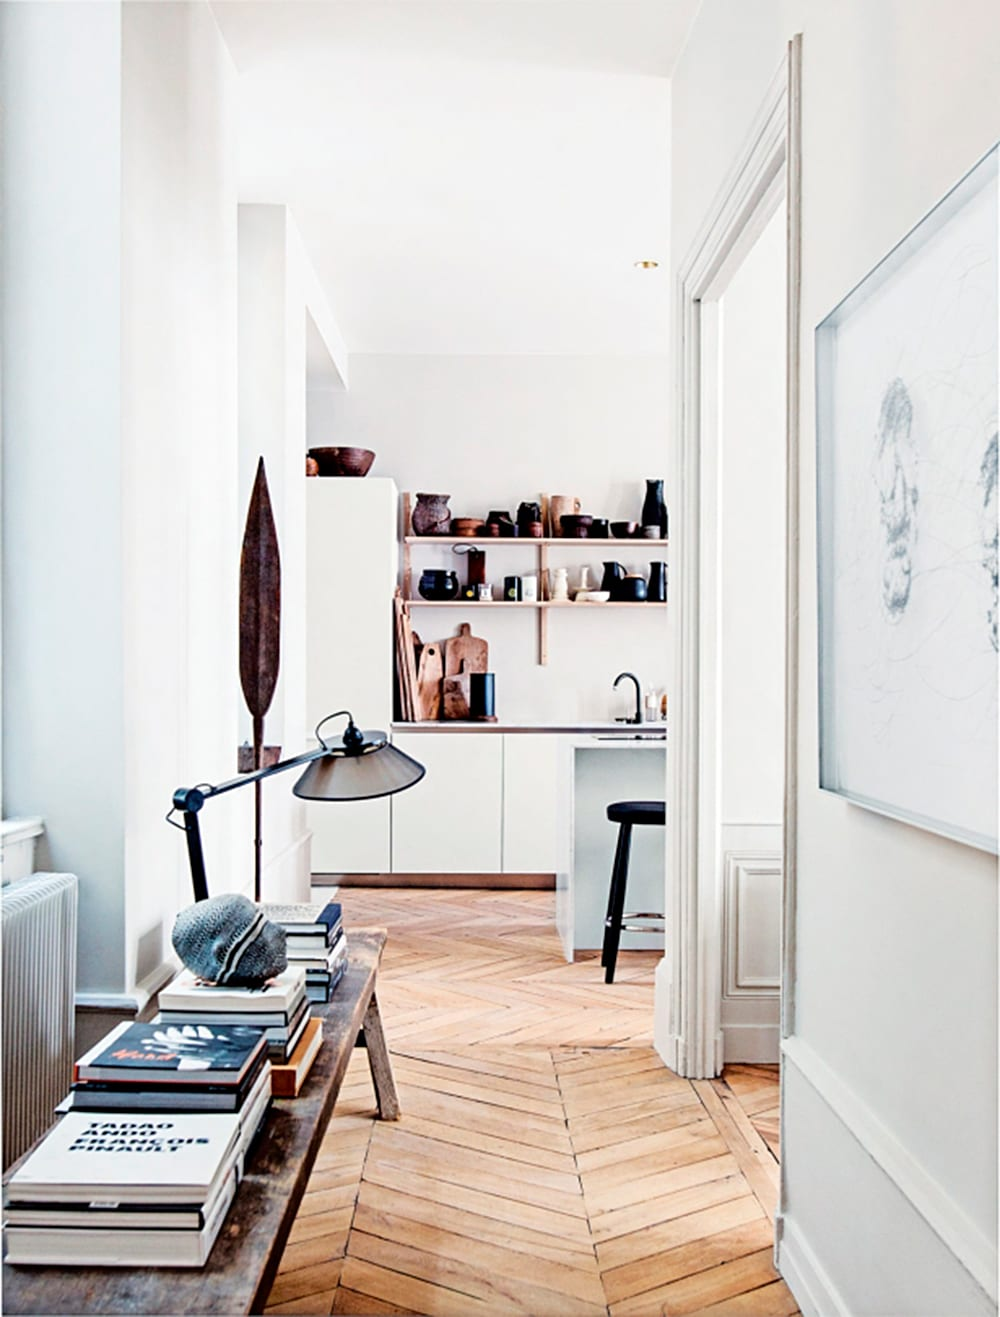 Style&Minimalism | Interiors | Converted 1850s Apartment in Lyon by Maison Hand